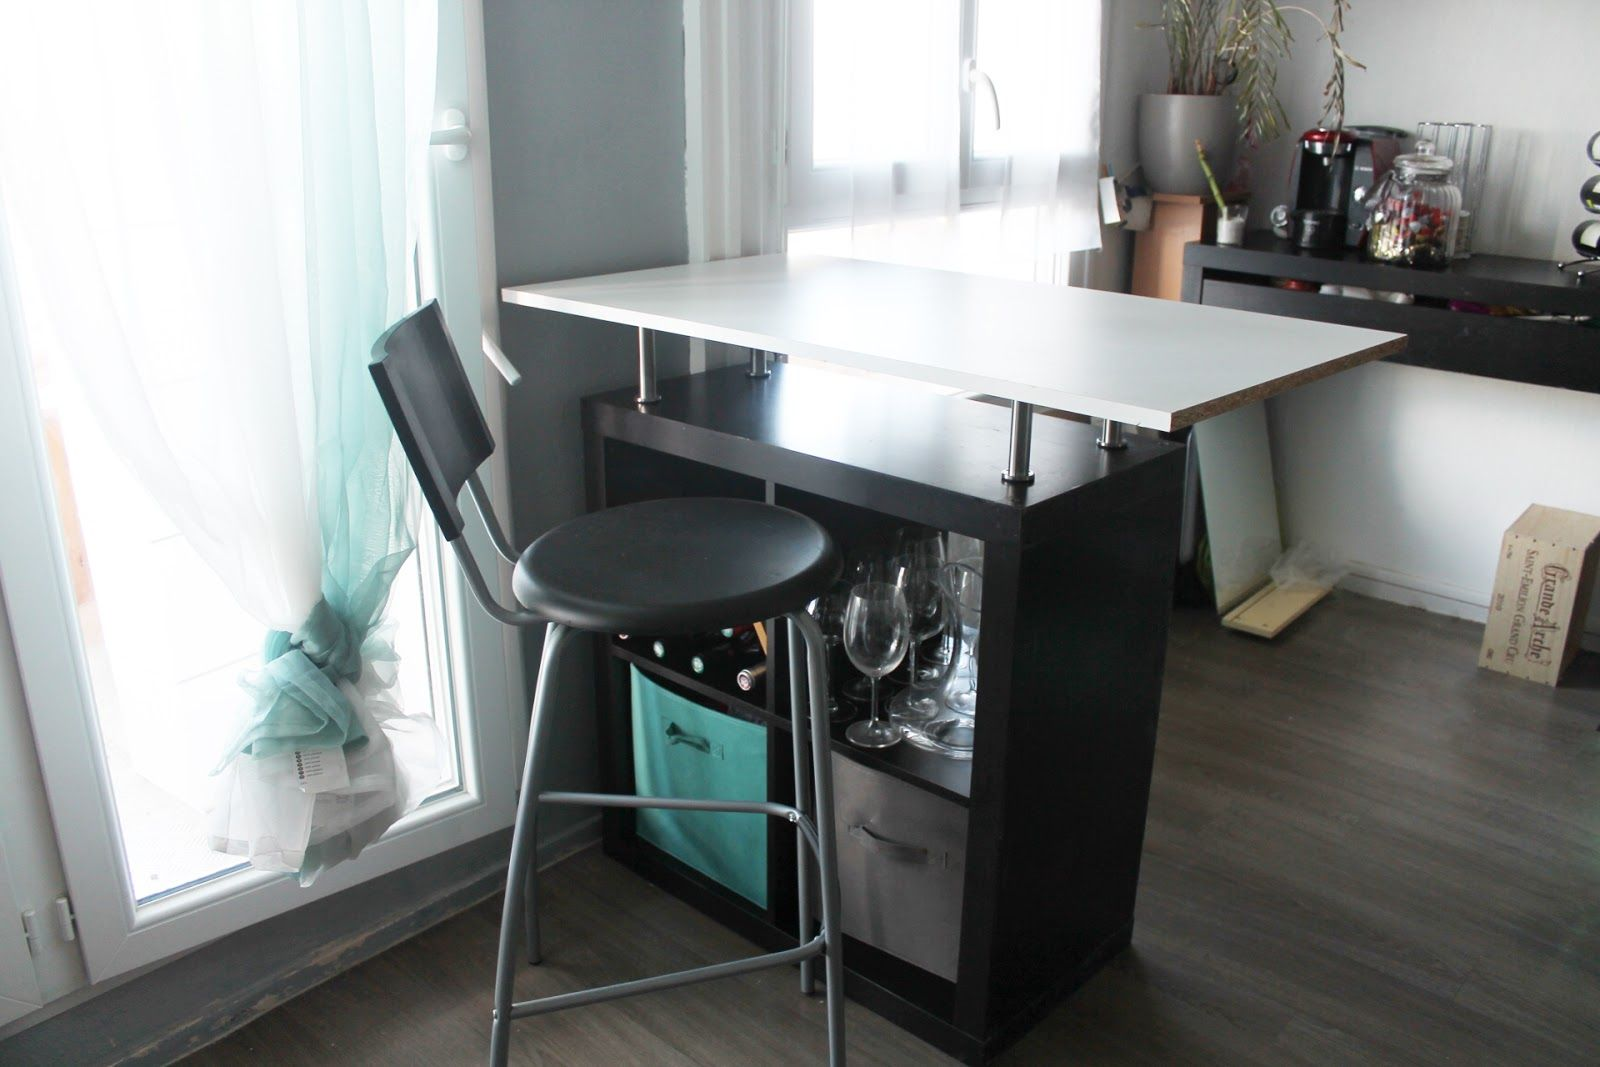 Transformer un meuble ikea en bar bureau pinterest d tournement de meub - Transformer un meuble ...